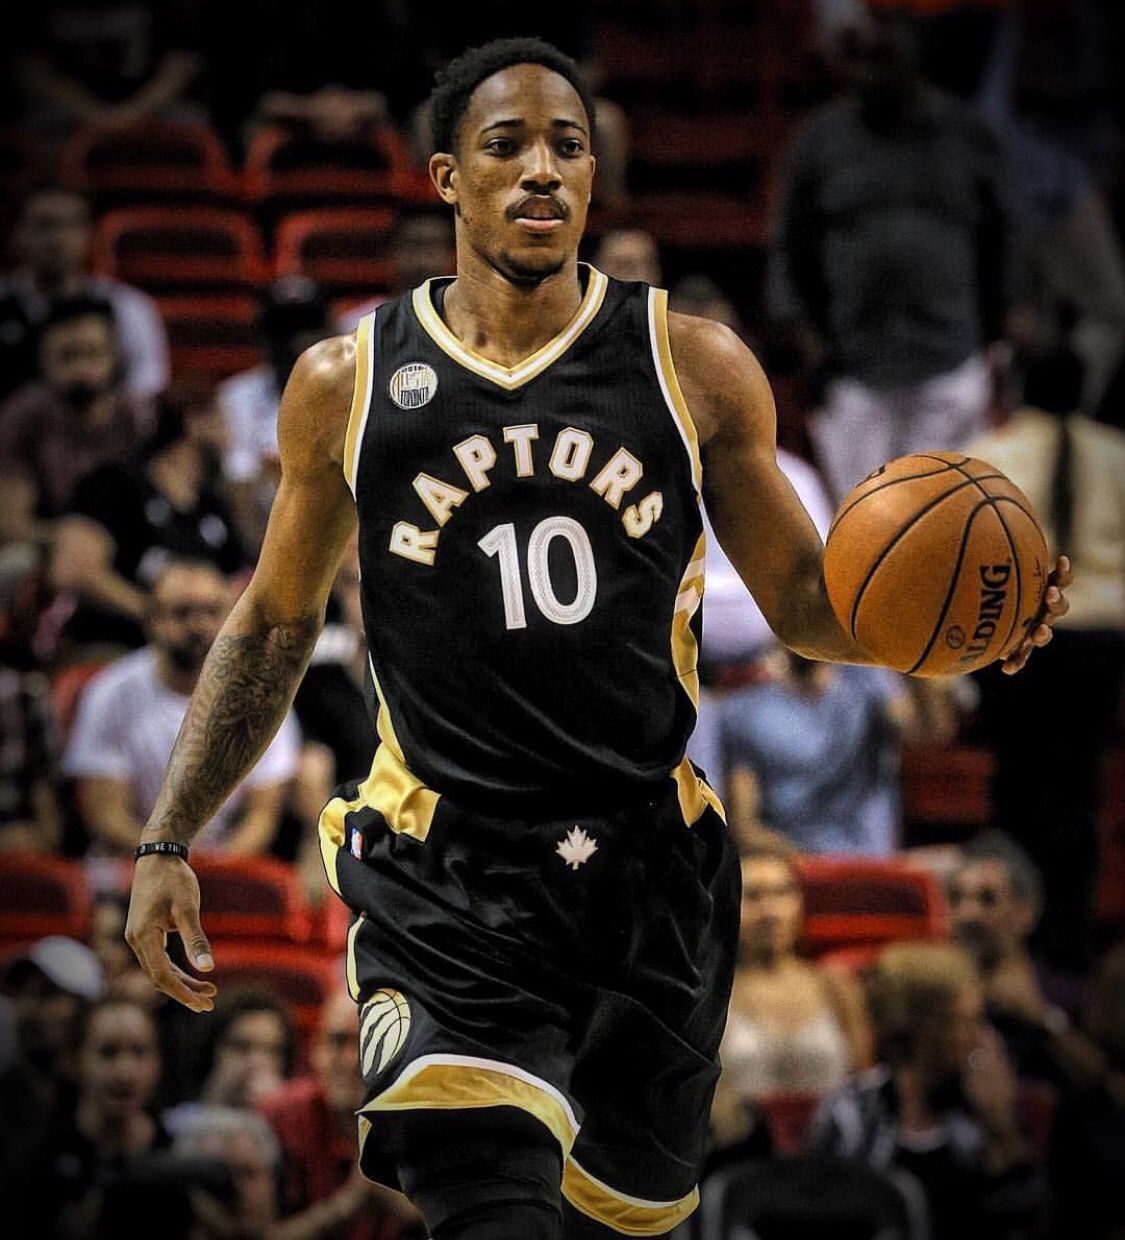 c3c2b14aaa3 Demar Derozan in the drake jerseys. | Hoopers | Sports, Toronto ...